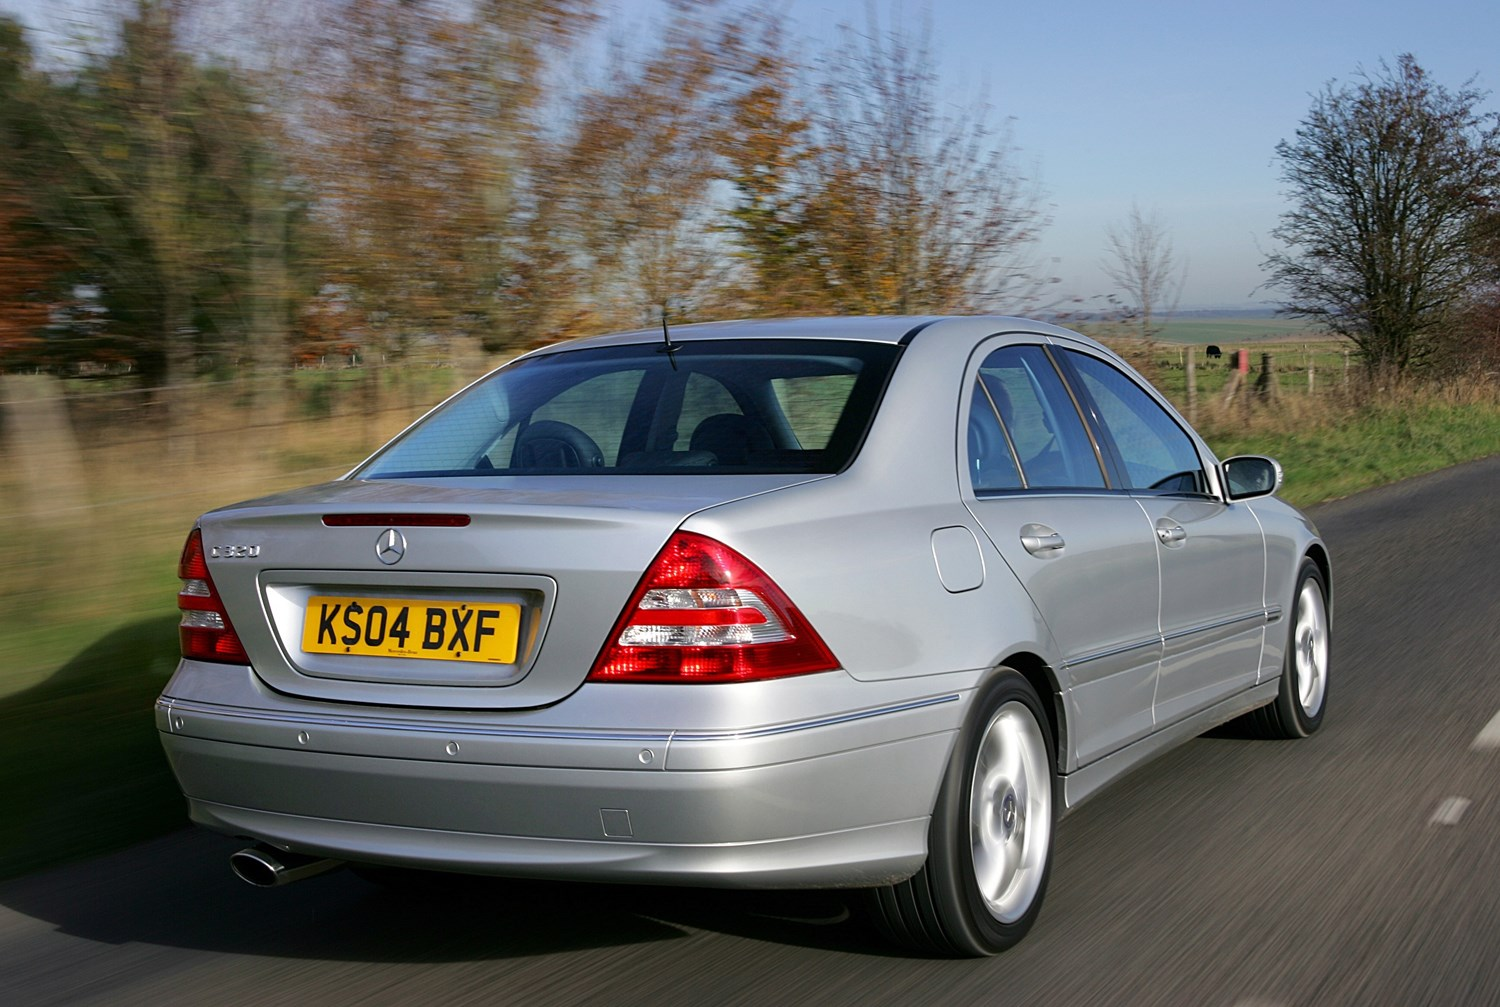 Used Mercedes For Sale >> Mercedes-Benz C-Class Saloon Review (2000 - 2007) | Parkers